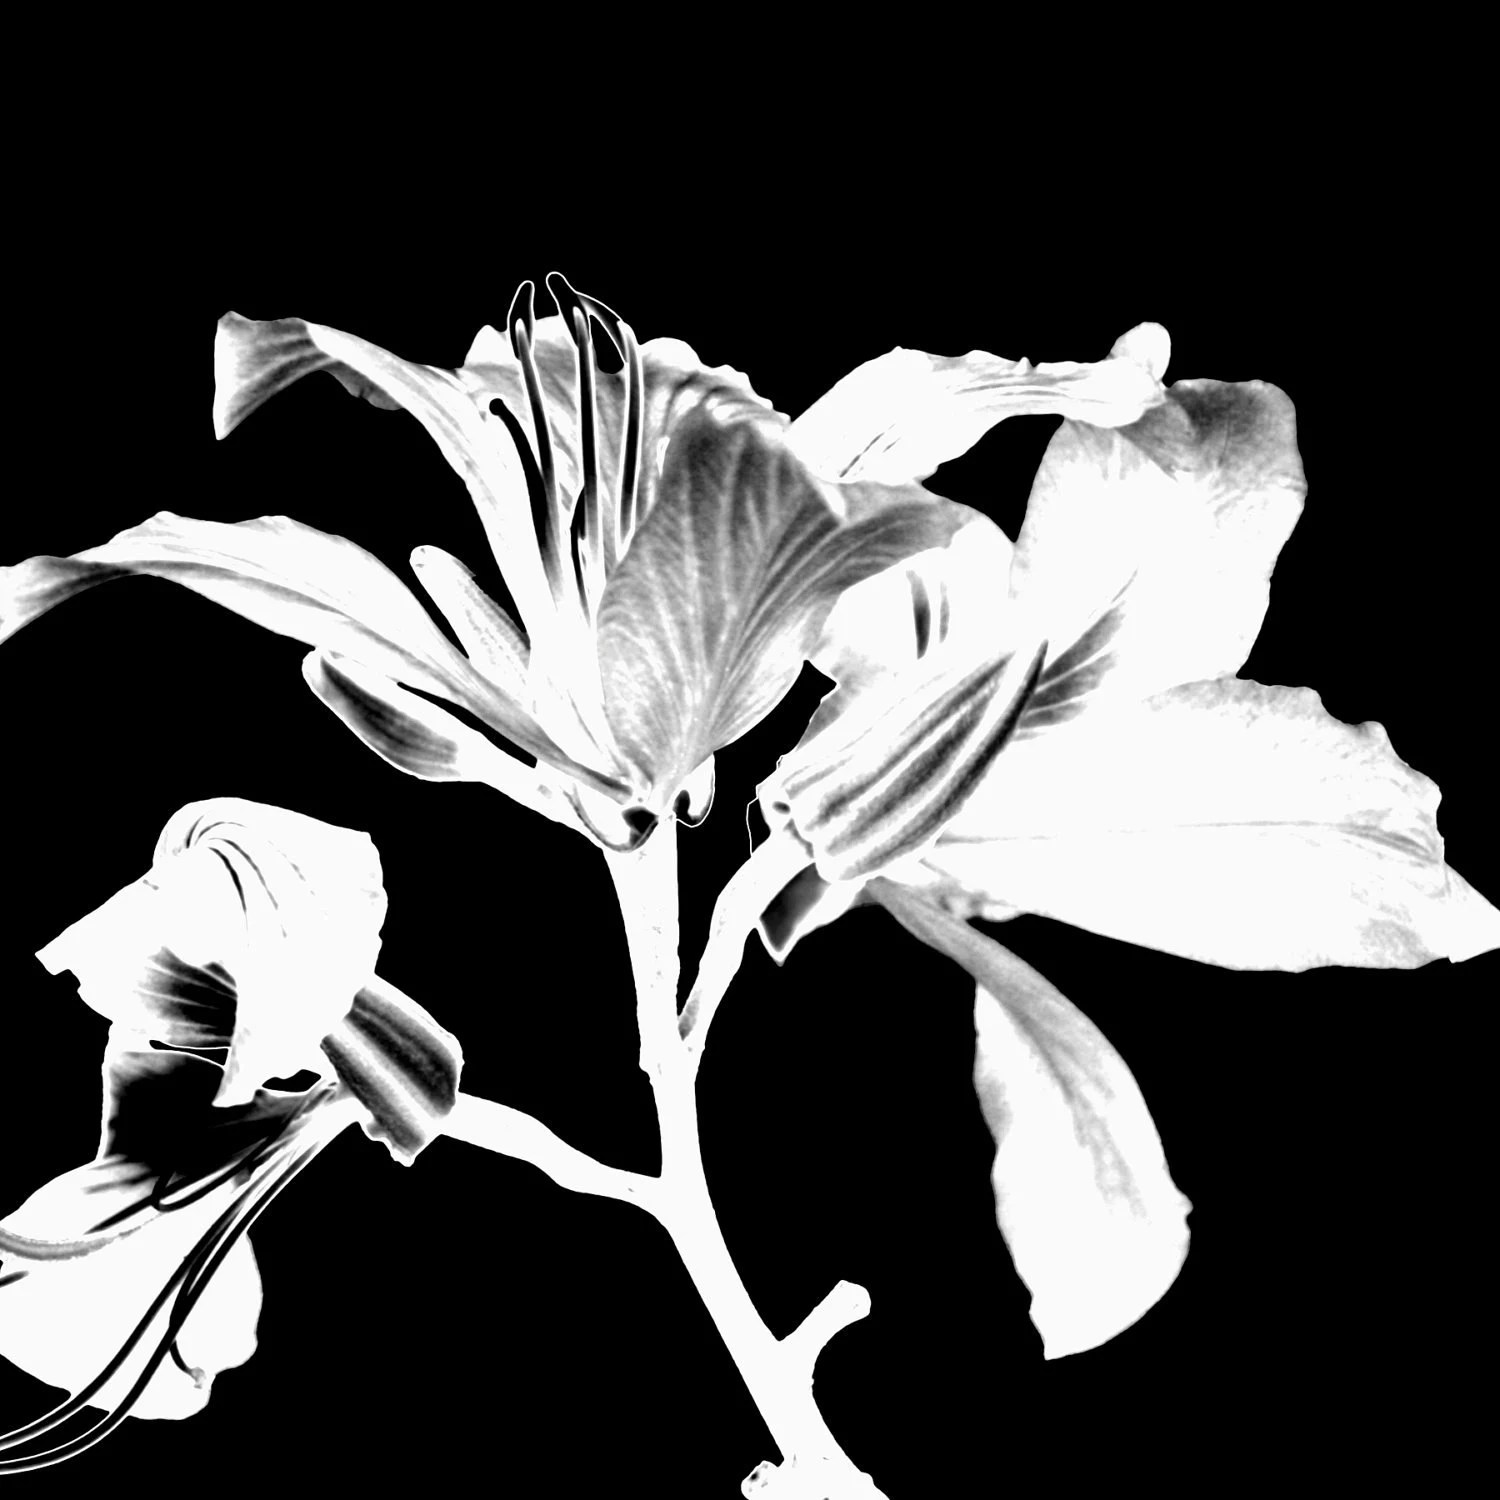 Digital Flower - Mexico - 8x8, 8x12 Fine Art Digitally Manipulated Photograph Black and White or Sepia (looks great square) -